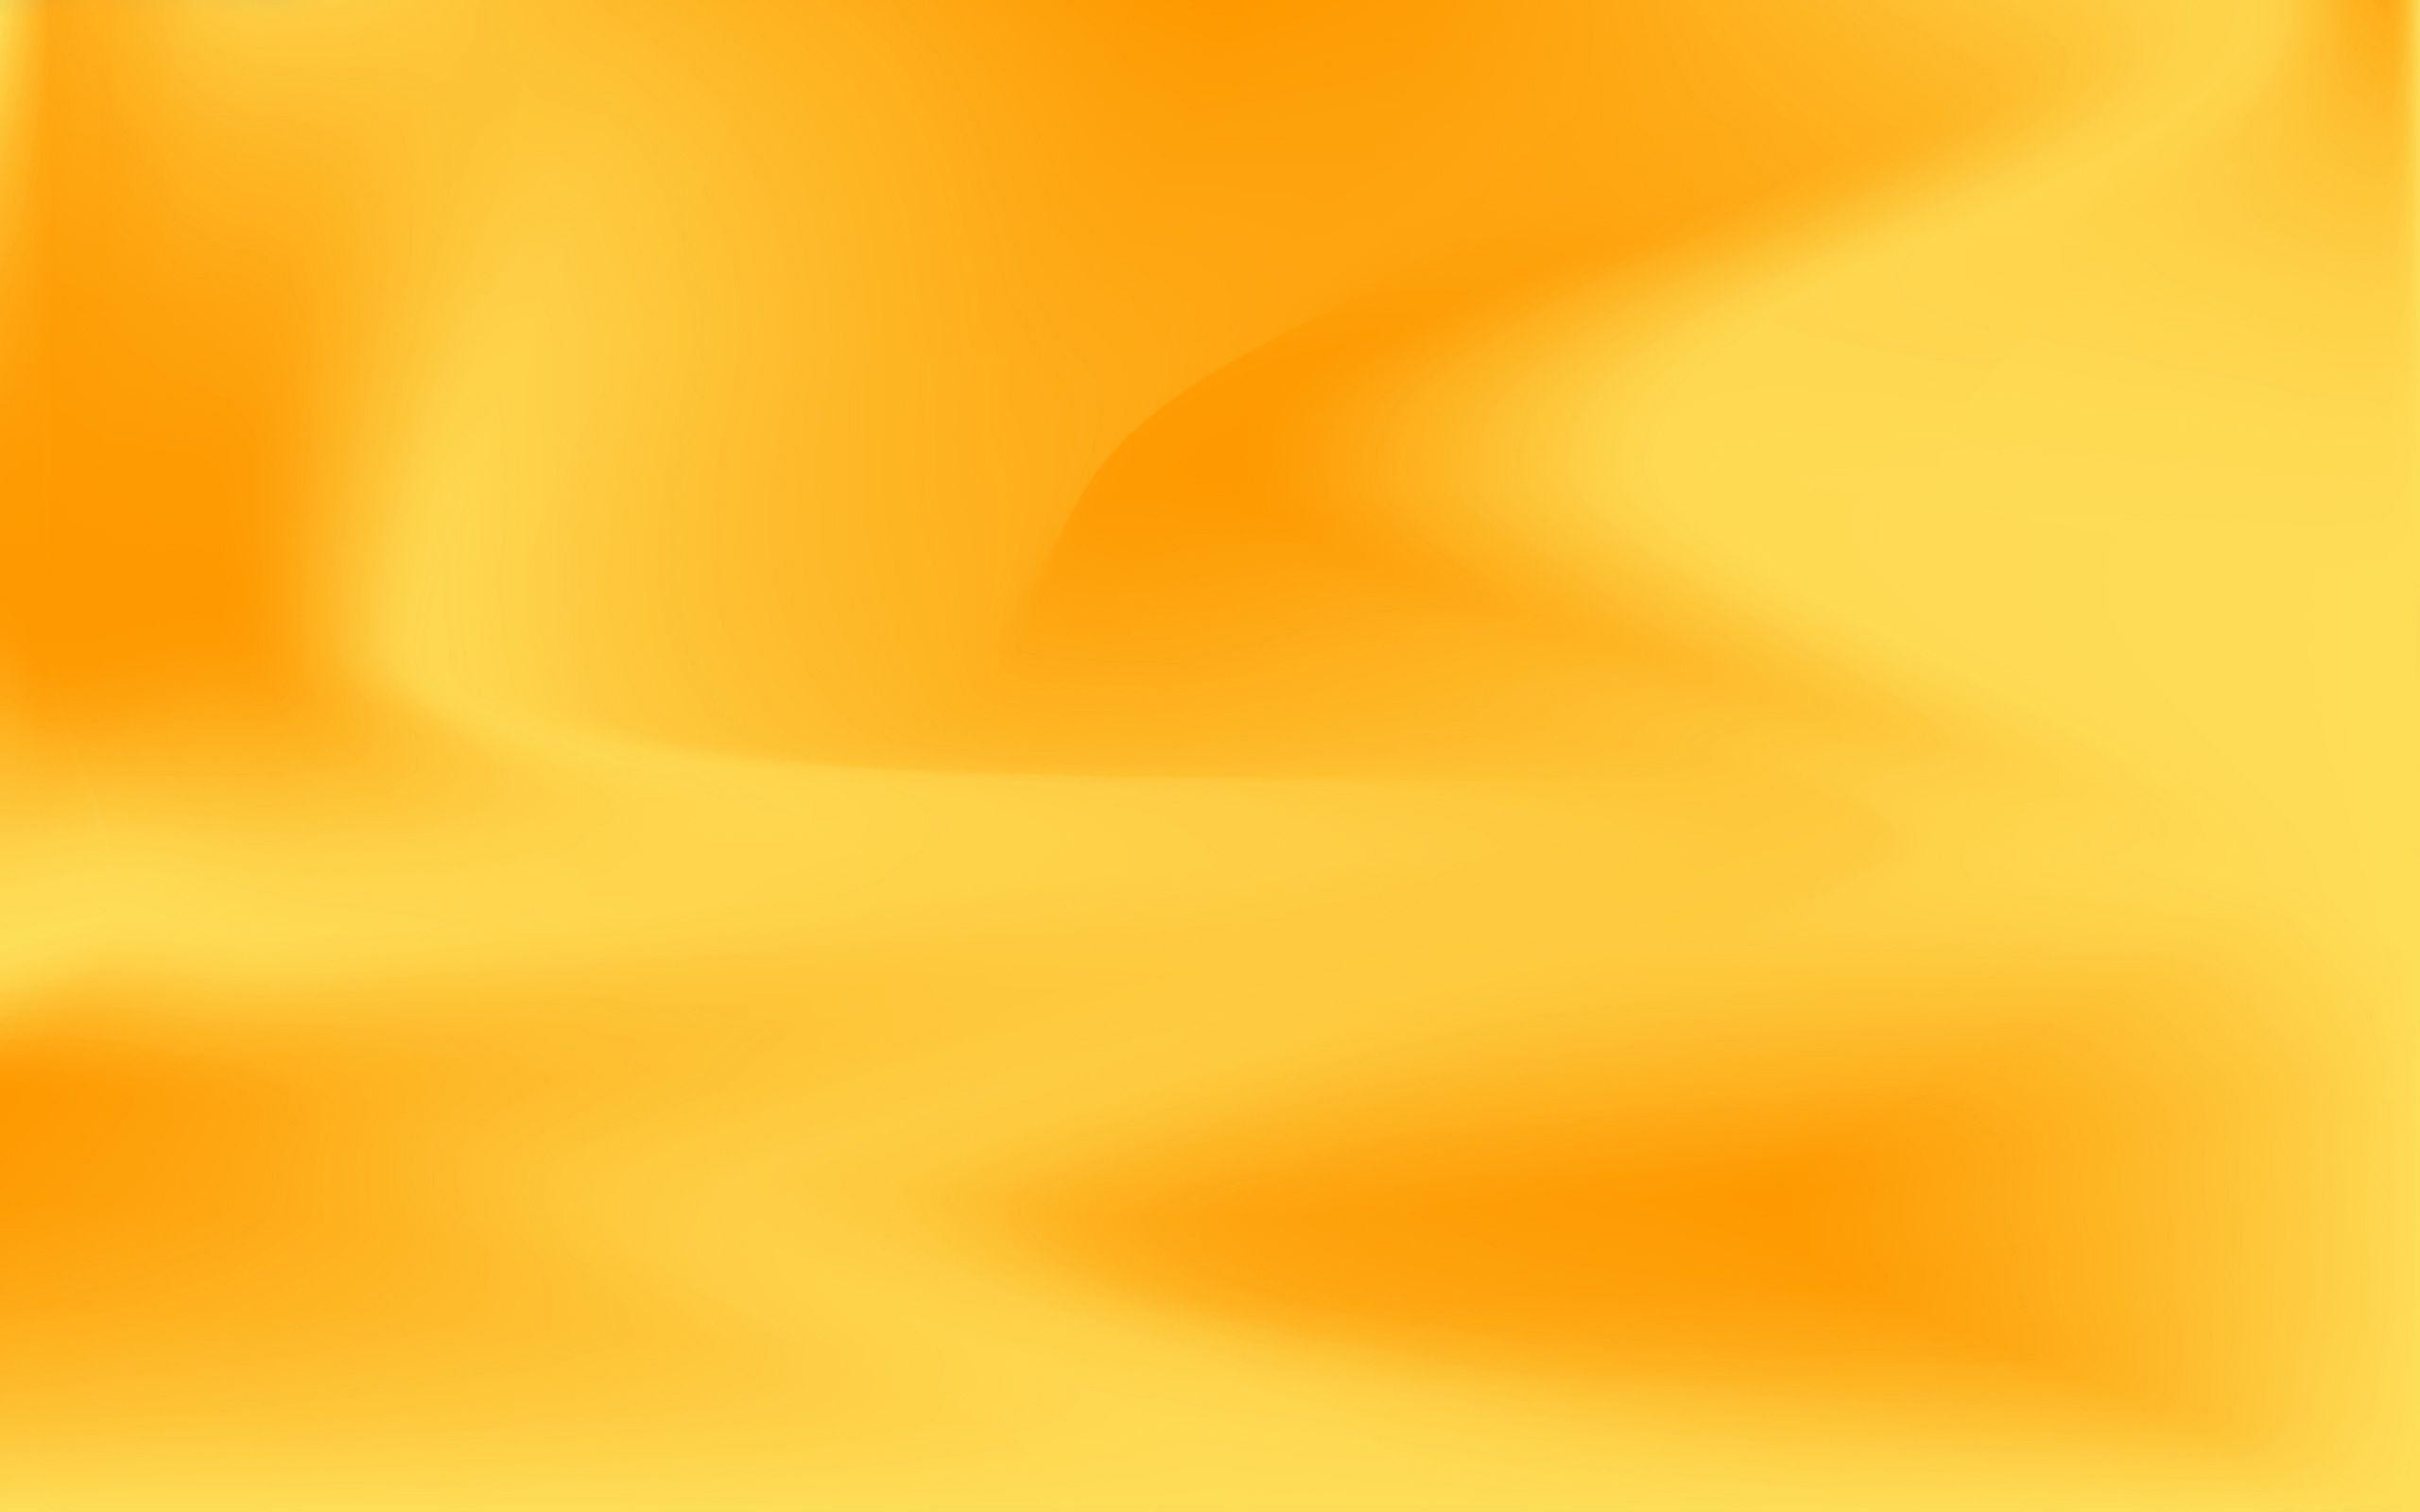 Wallpapers For > Cool Yellow Background Designs